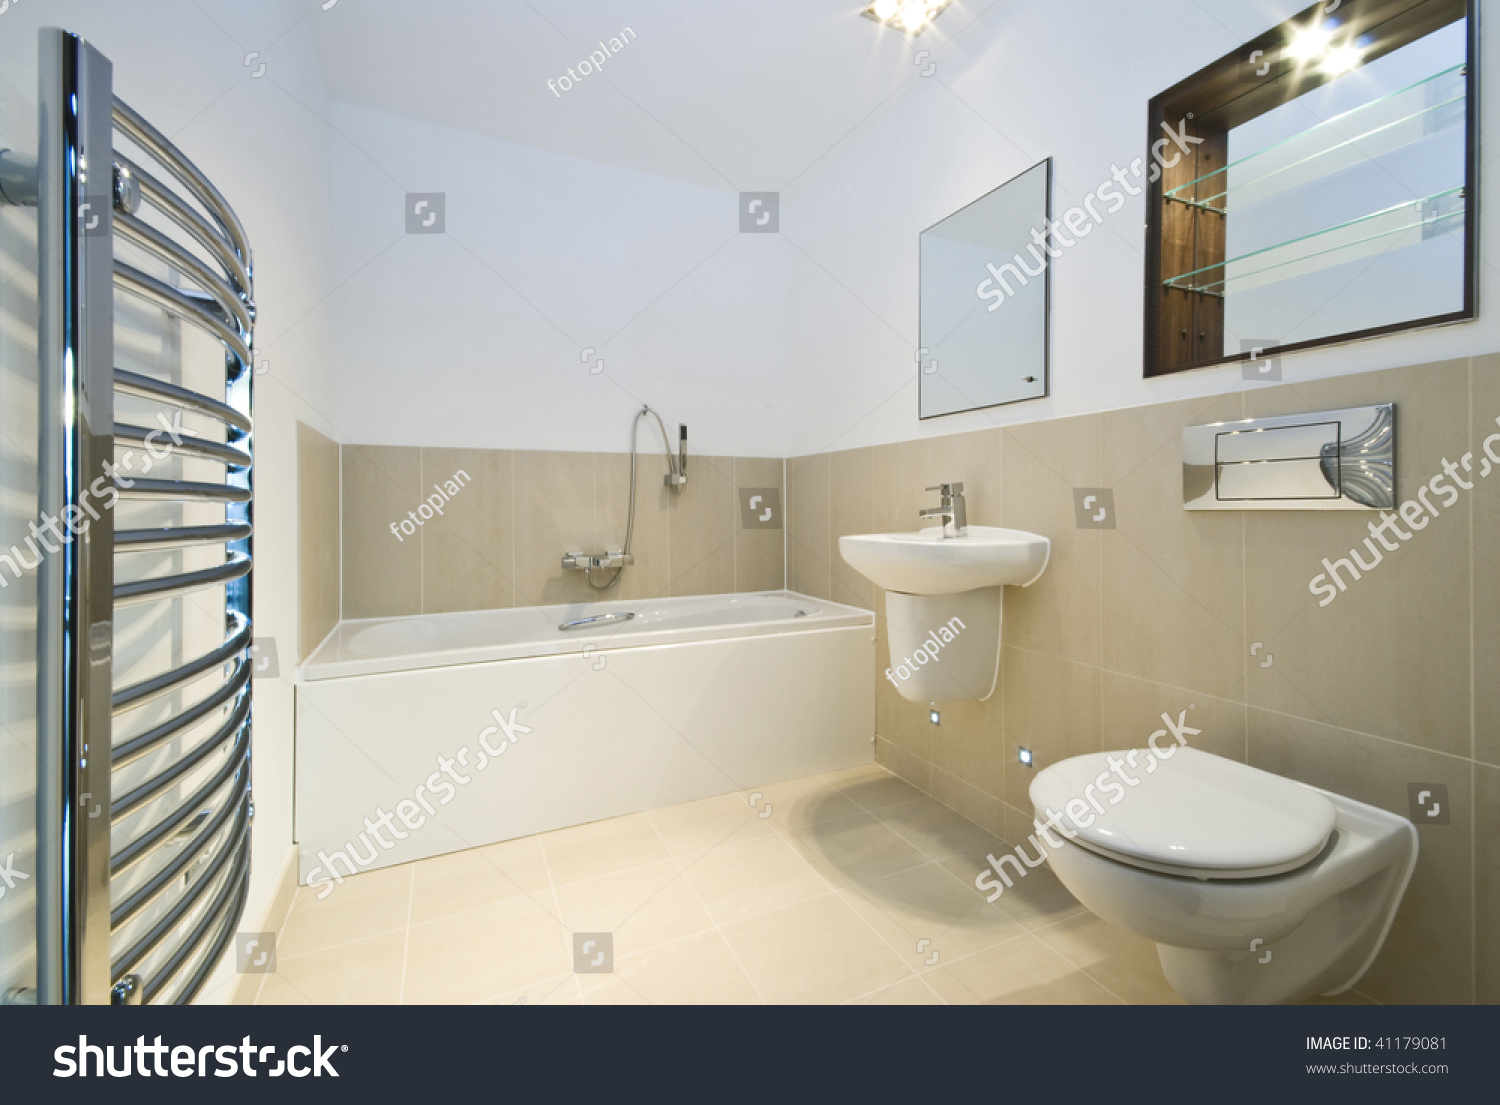 Modern Bathroom Beige Tiled Walls Stock Photo & Image (Royalty-Free ...